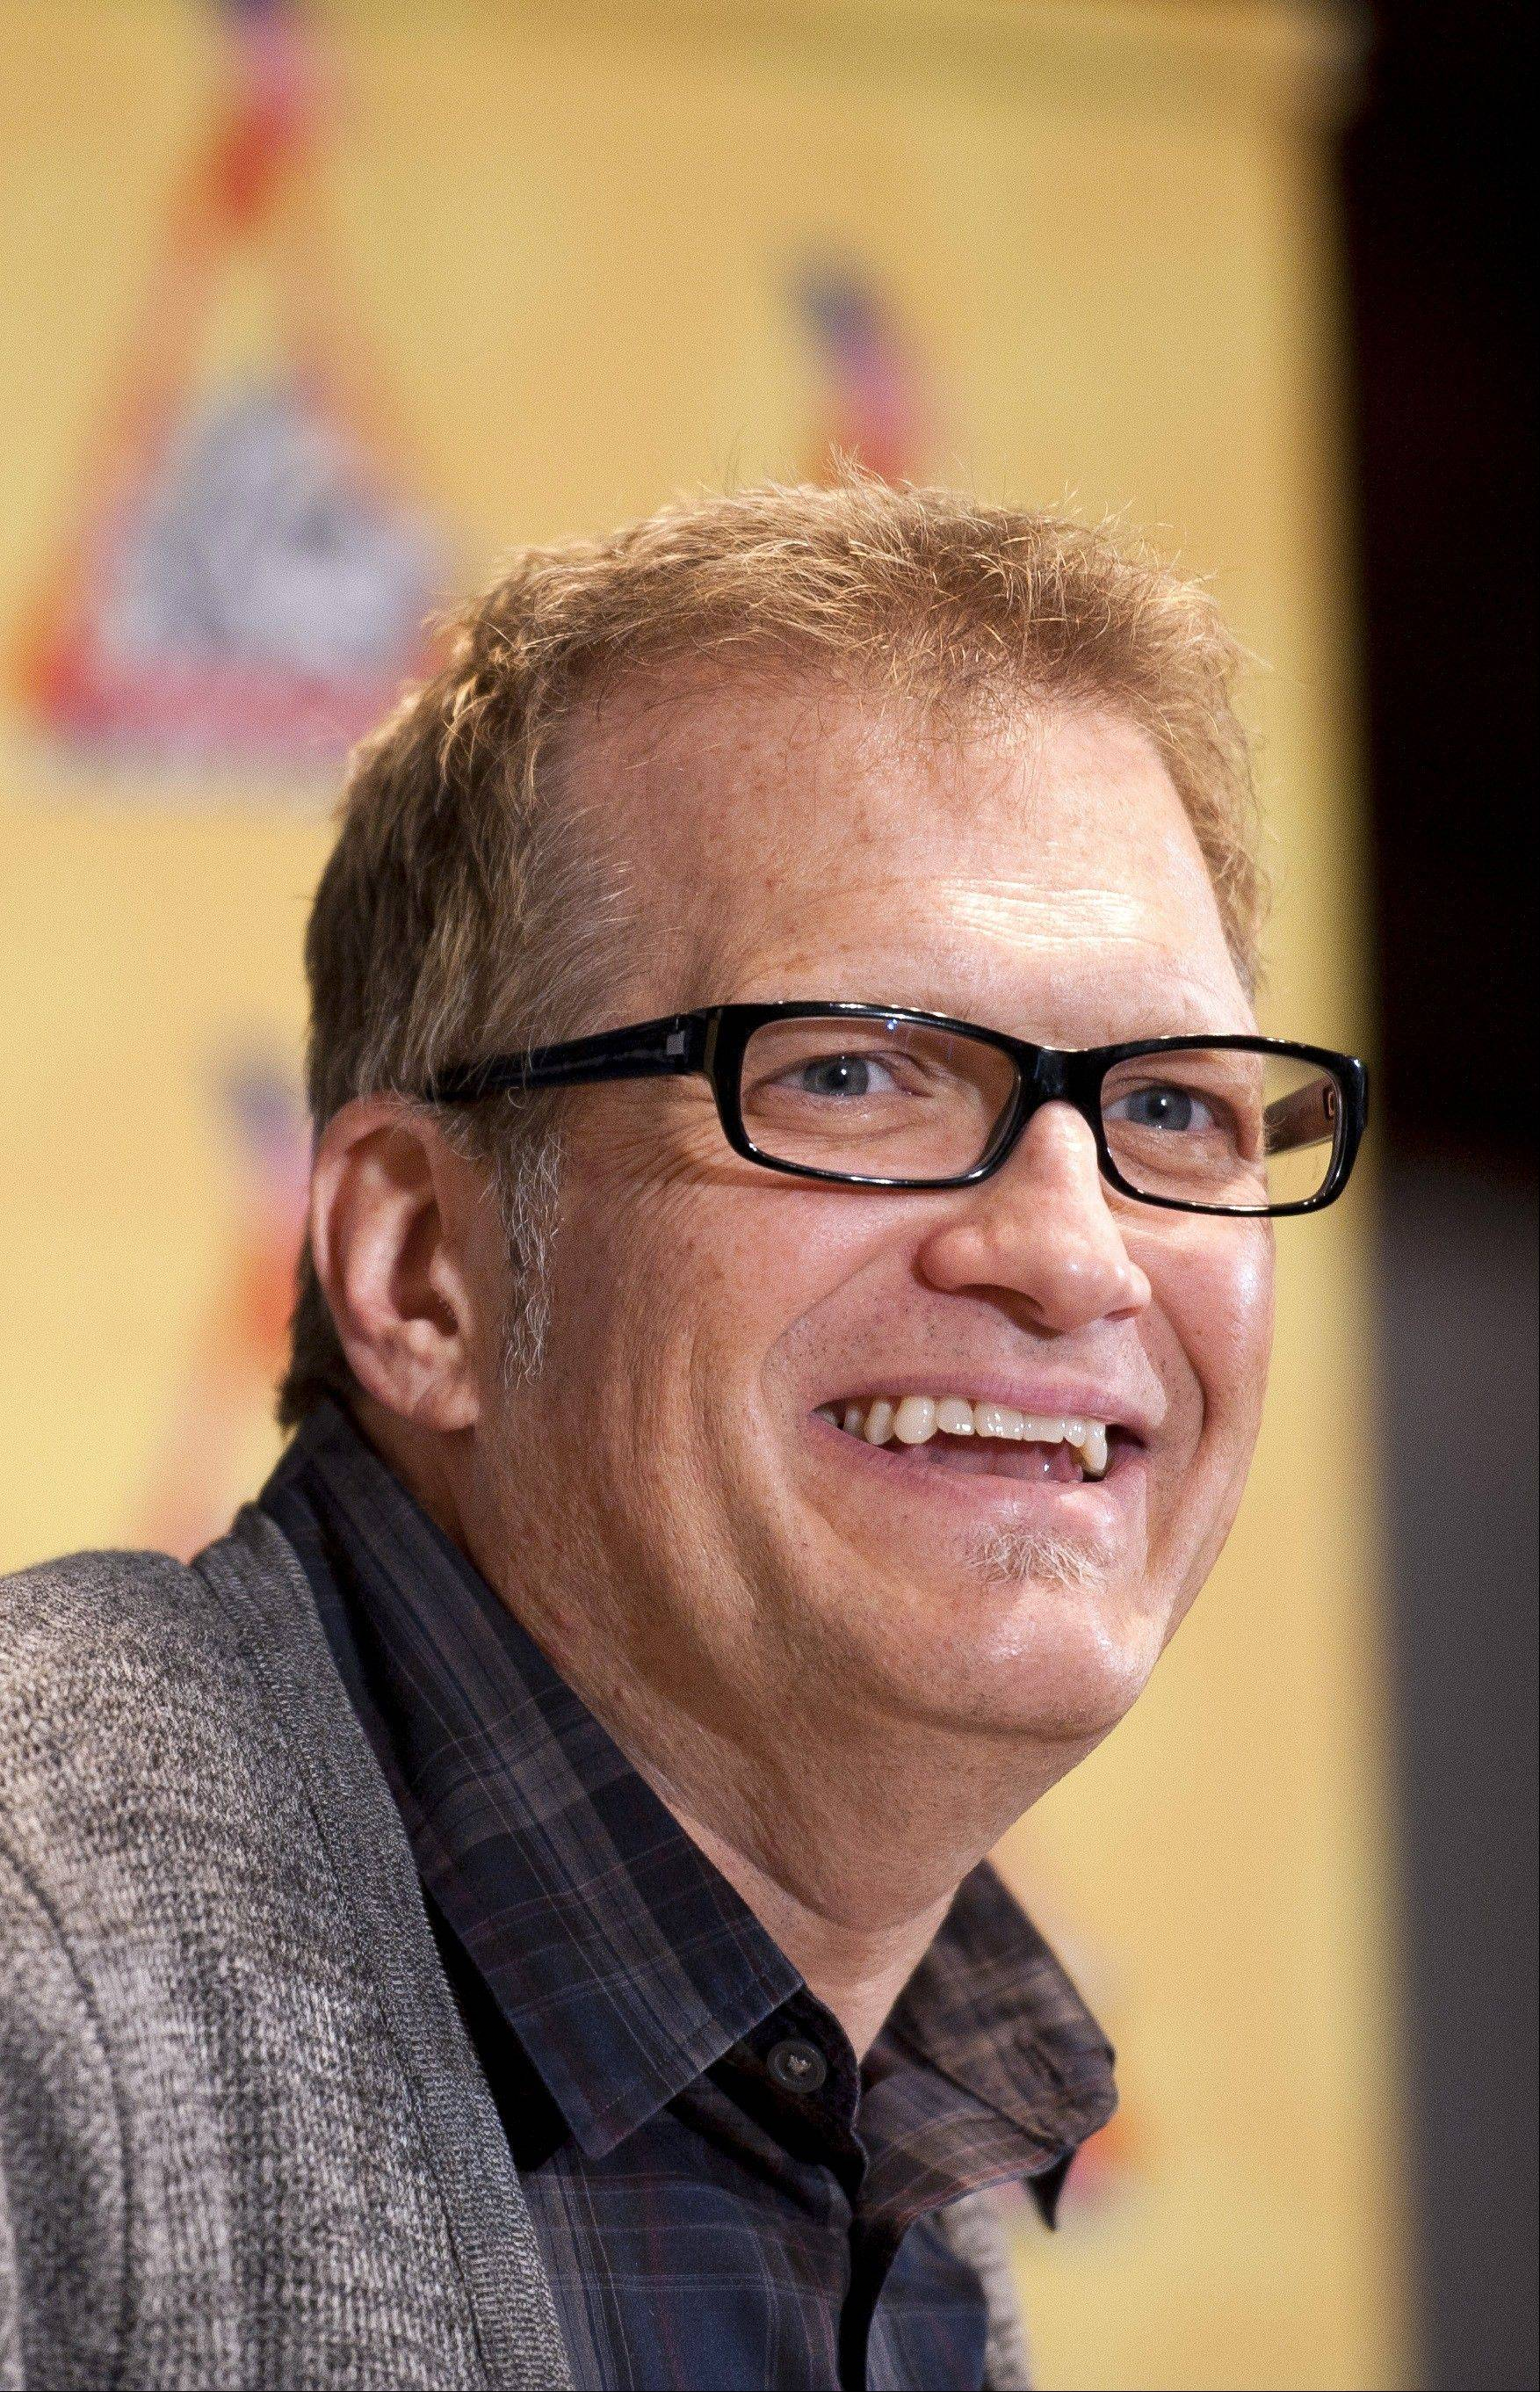 Comedian Drew Carey is set to perform at Zanies at Pheasant Run Resort in St. Charles.